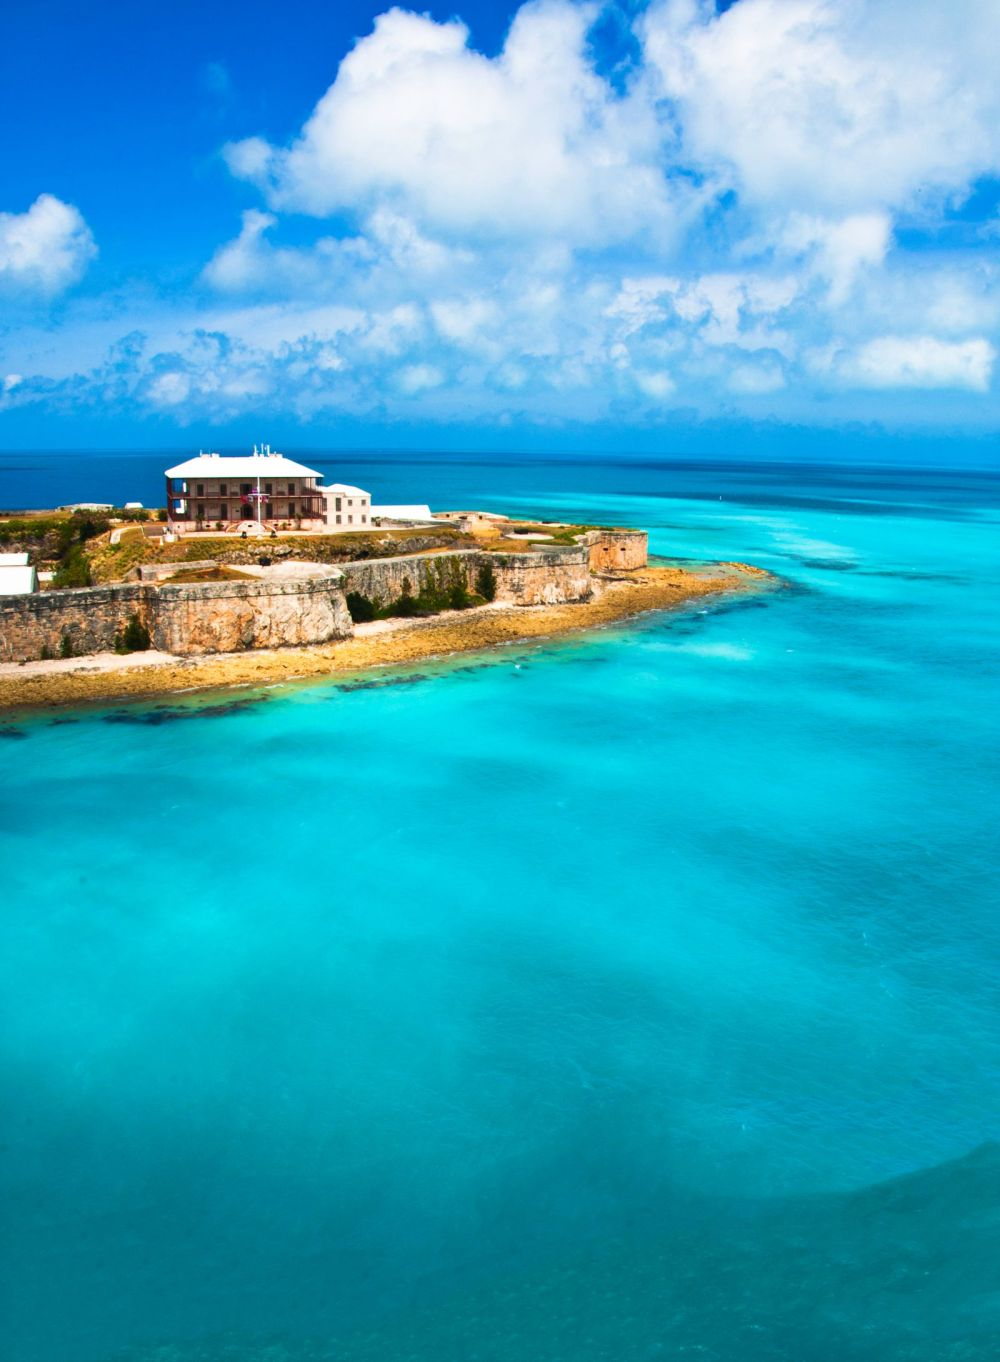 11 Things You Have To See and Do When Visiting Bermuda (7)